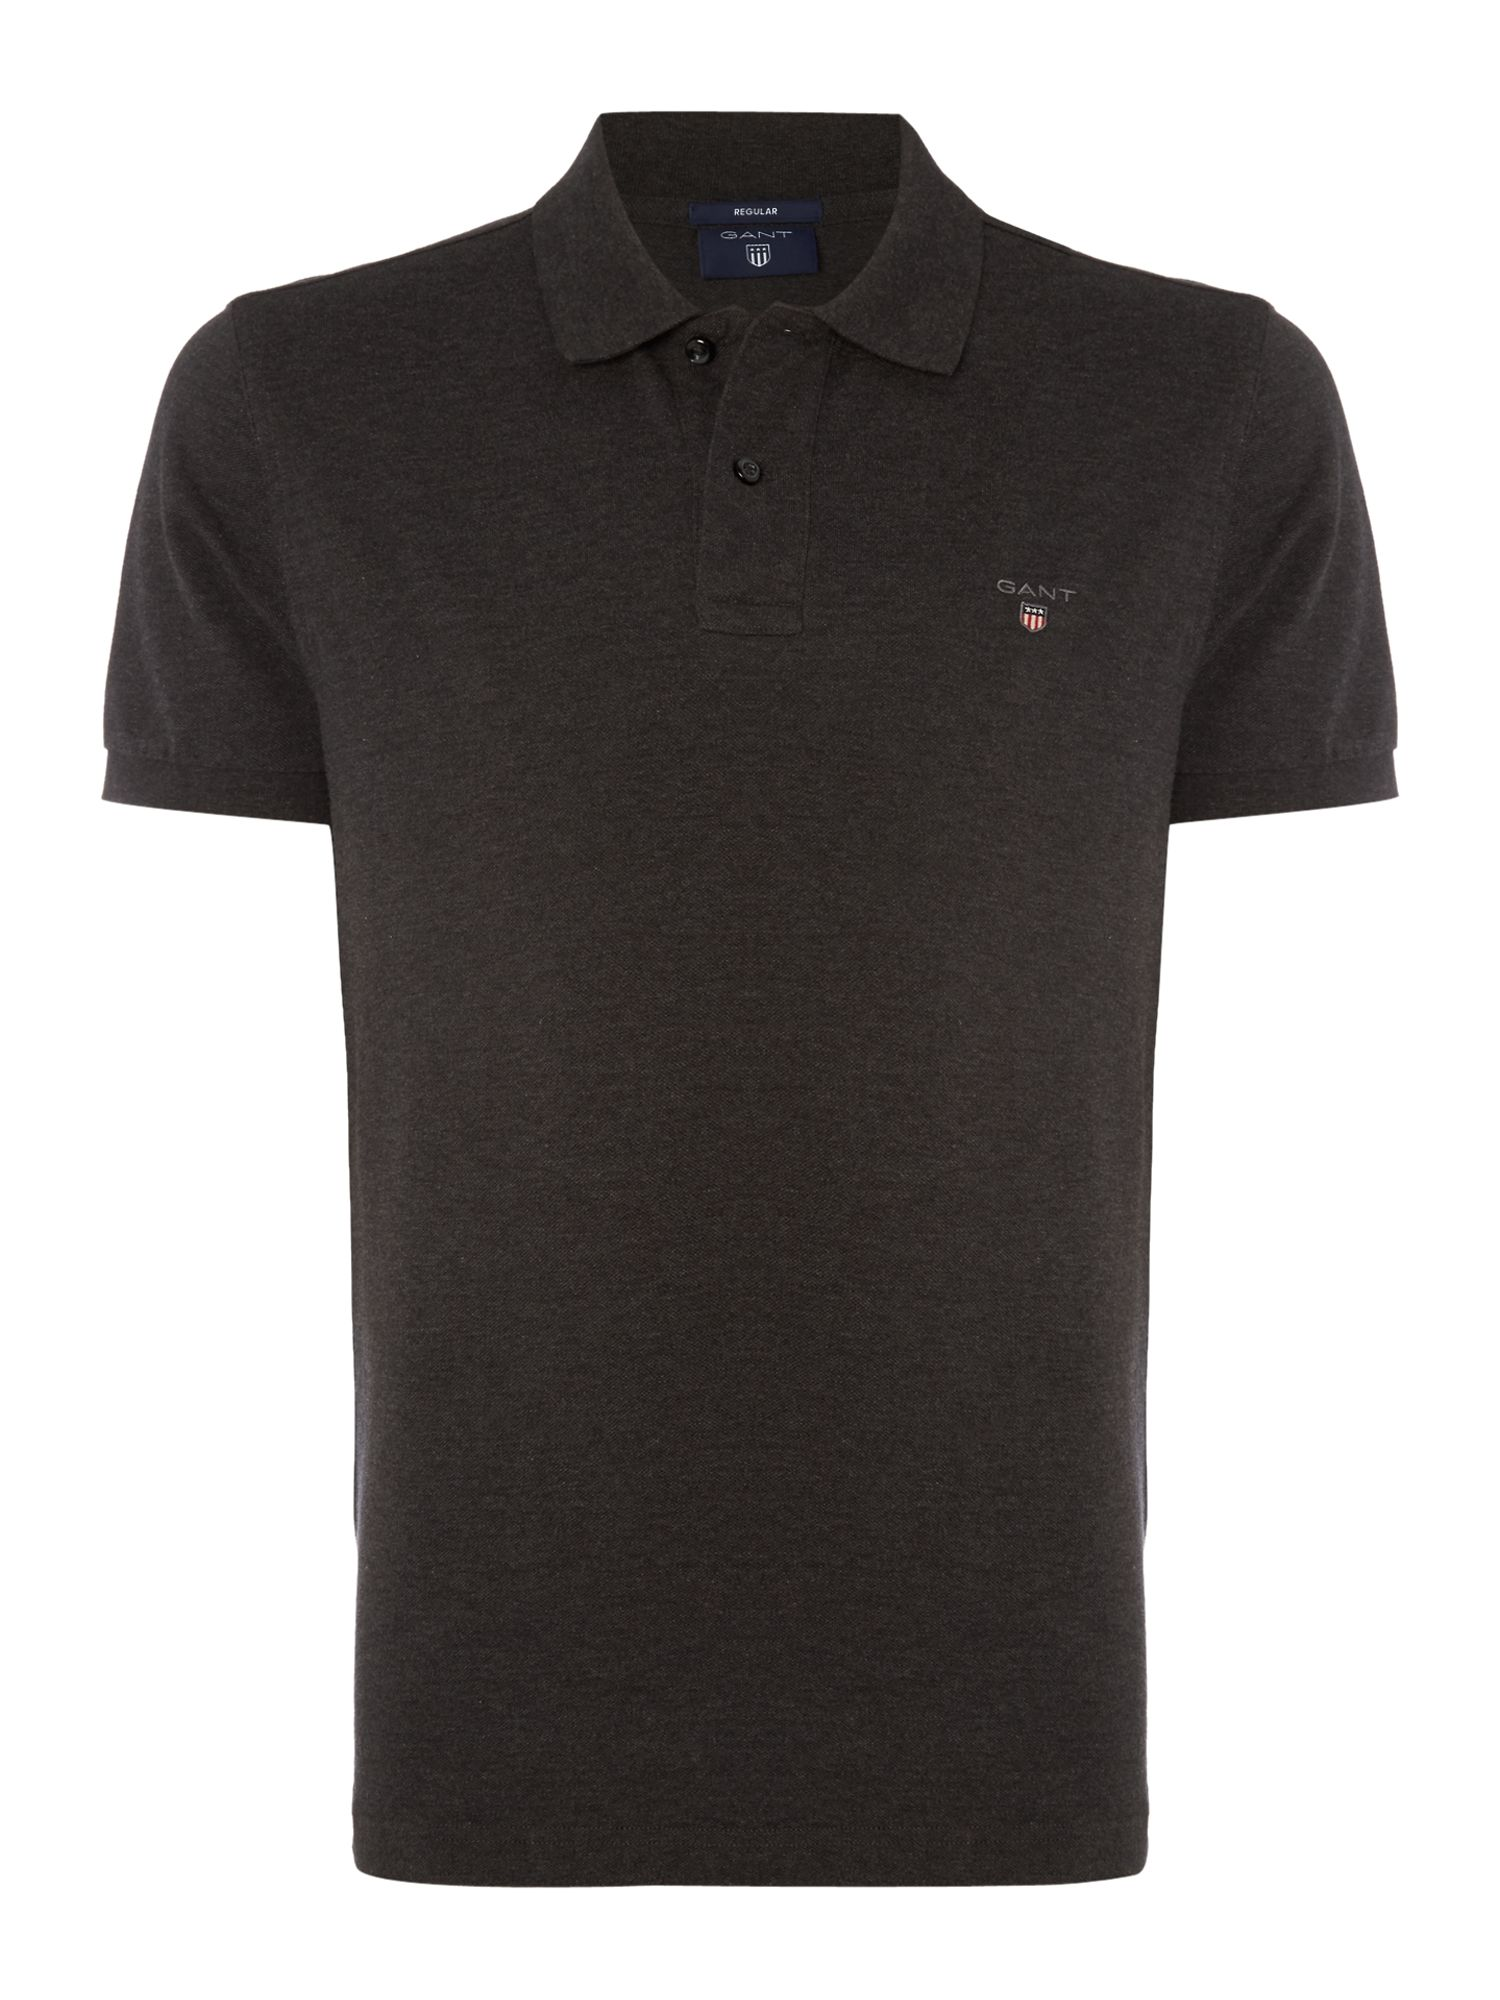 Men's Gant Original Pique Short Sleeve Polo, Charcoal